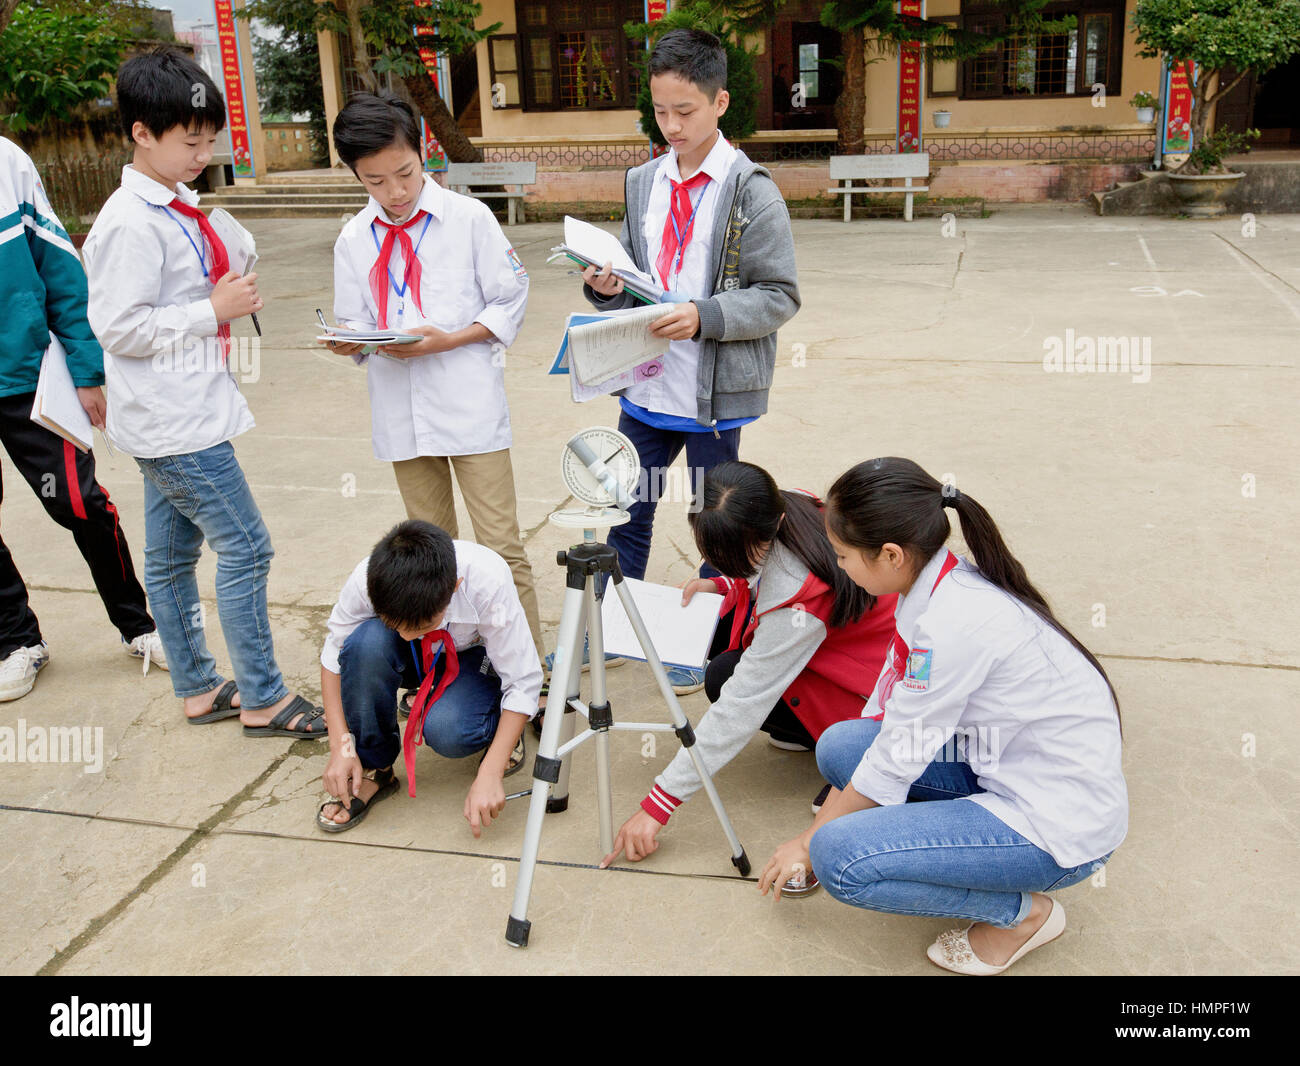 School children attending outdoor classroom, learning how to operate a sextant, Thai Giang Pho Boarding School. - Stock Image